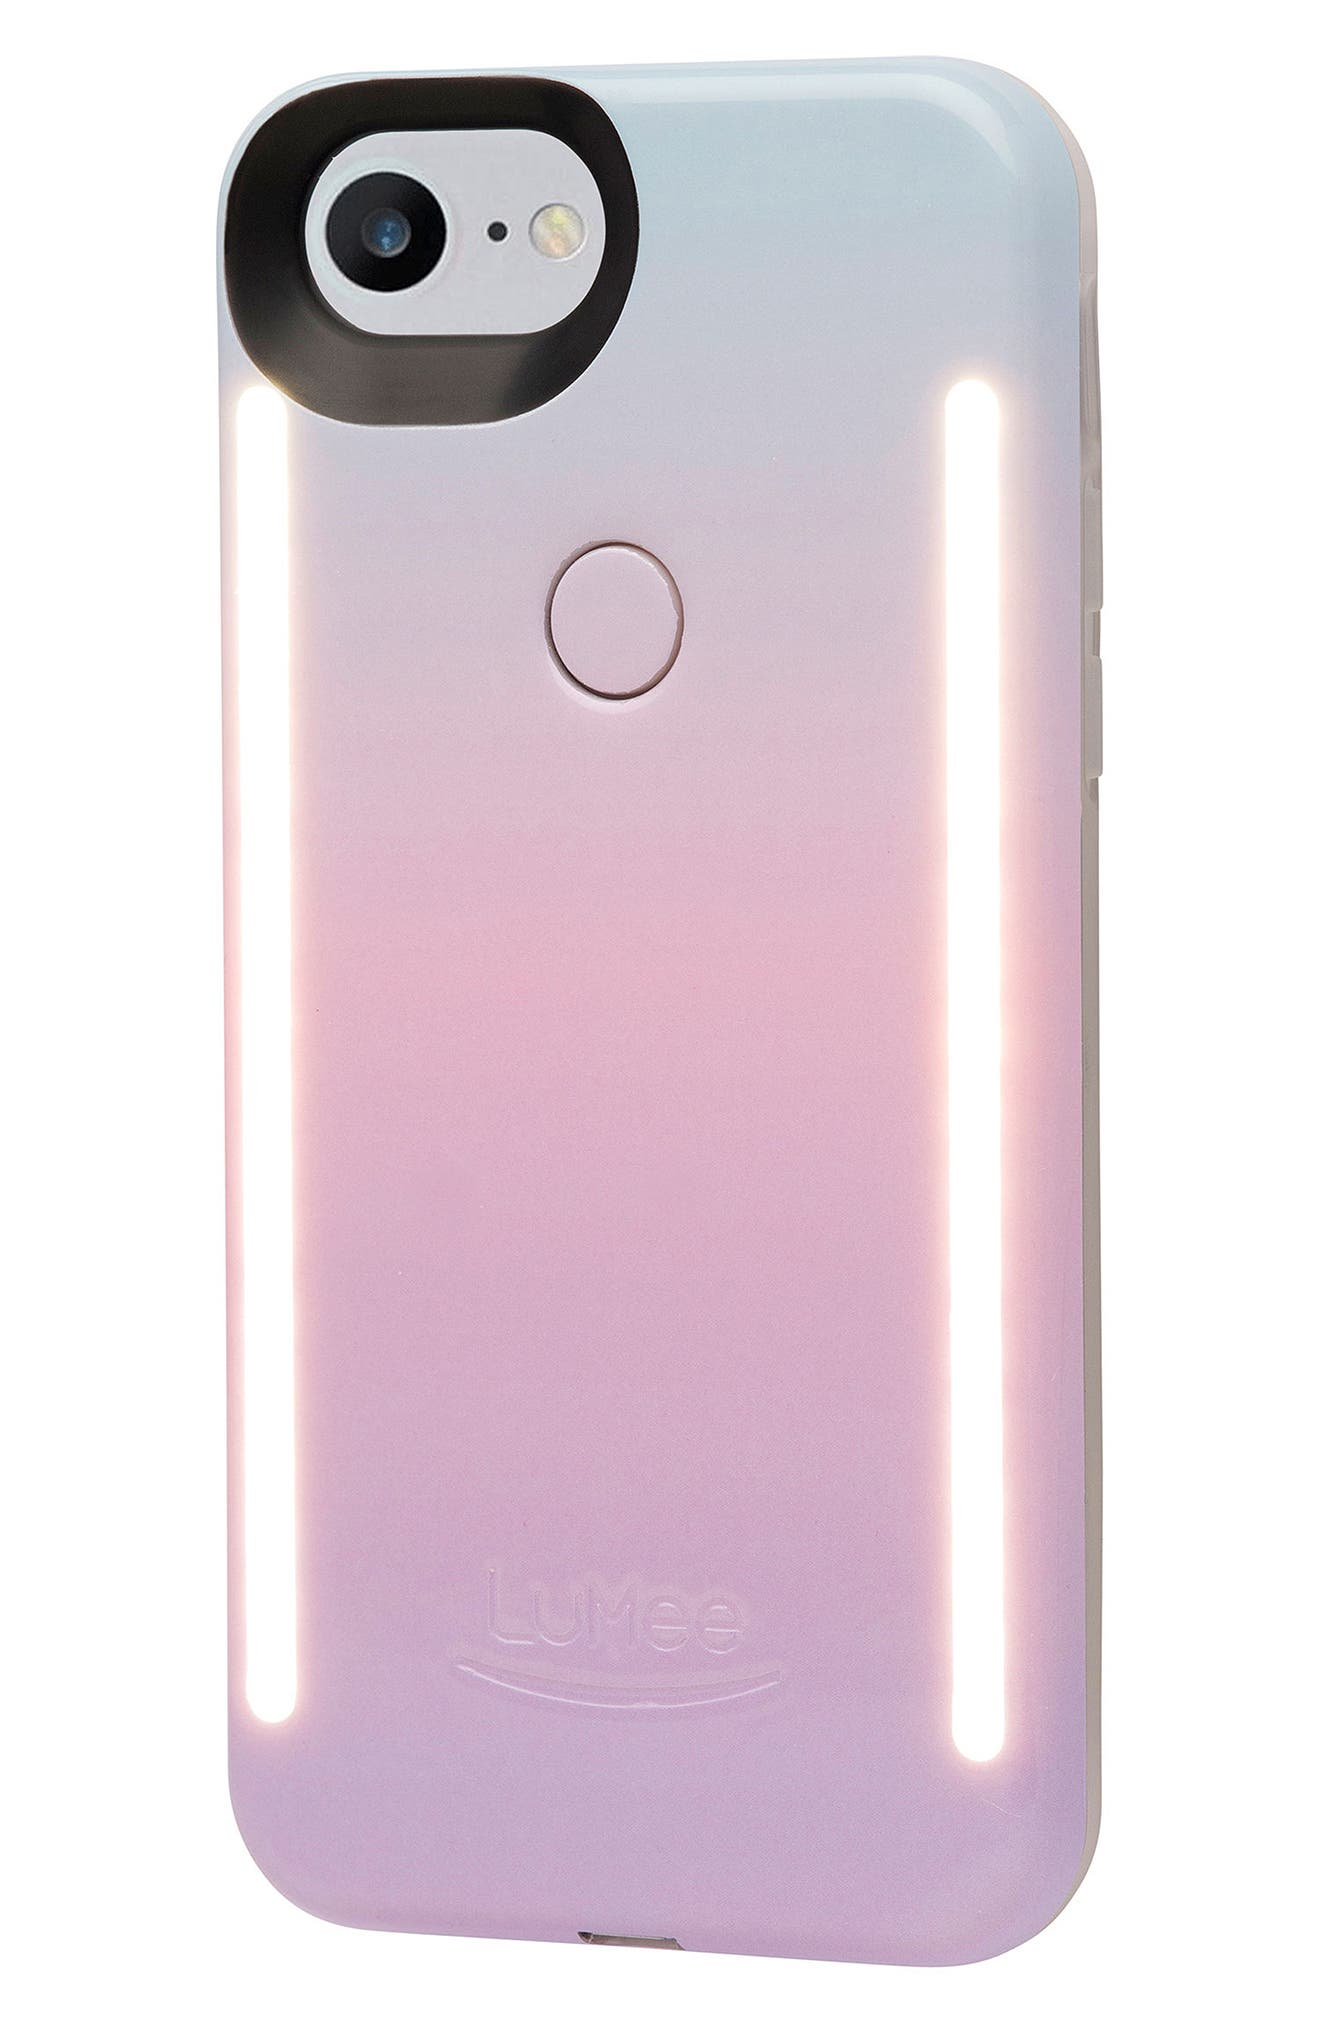 Duo LED Lighted iPhone 6/6s/7/8 & 6/6s/7/8 Plus Case,                             Alternate thumbnail 2, color,                             Cascade